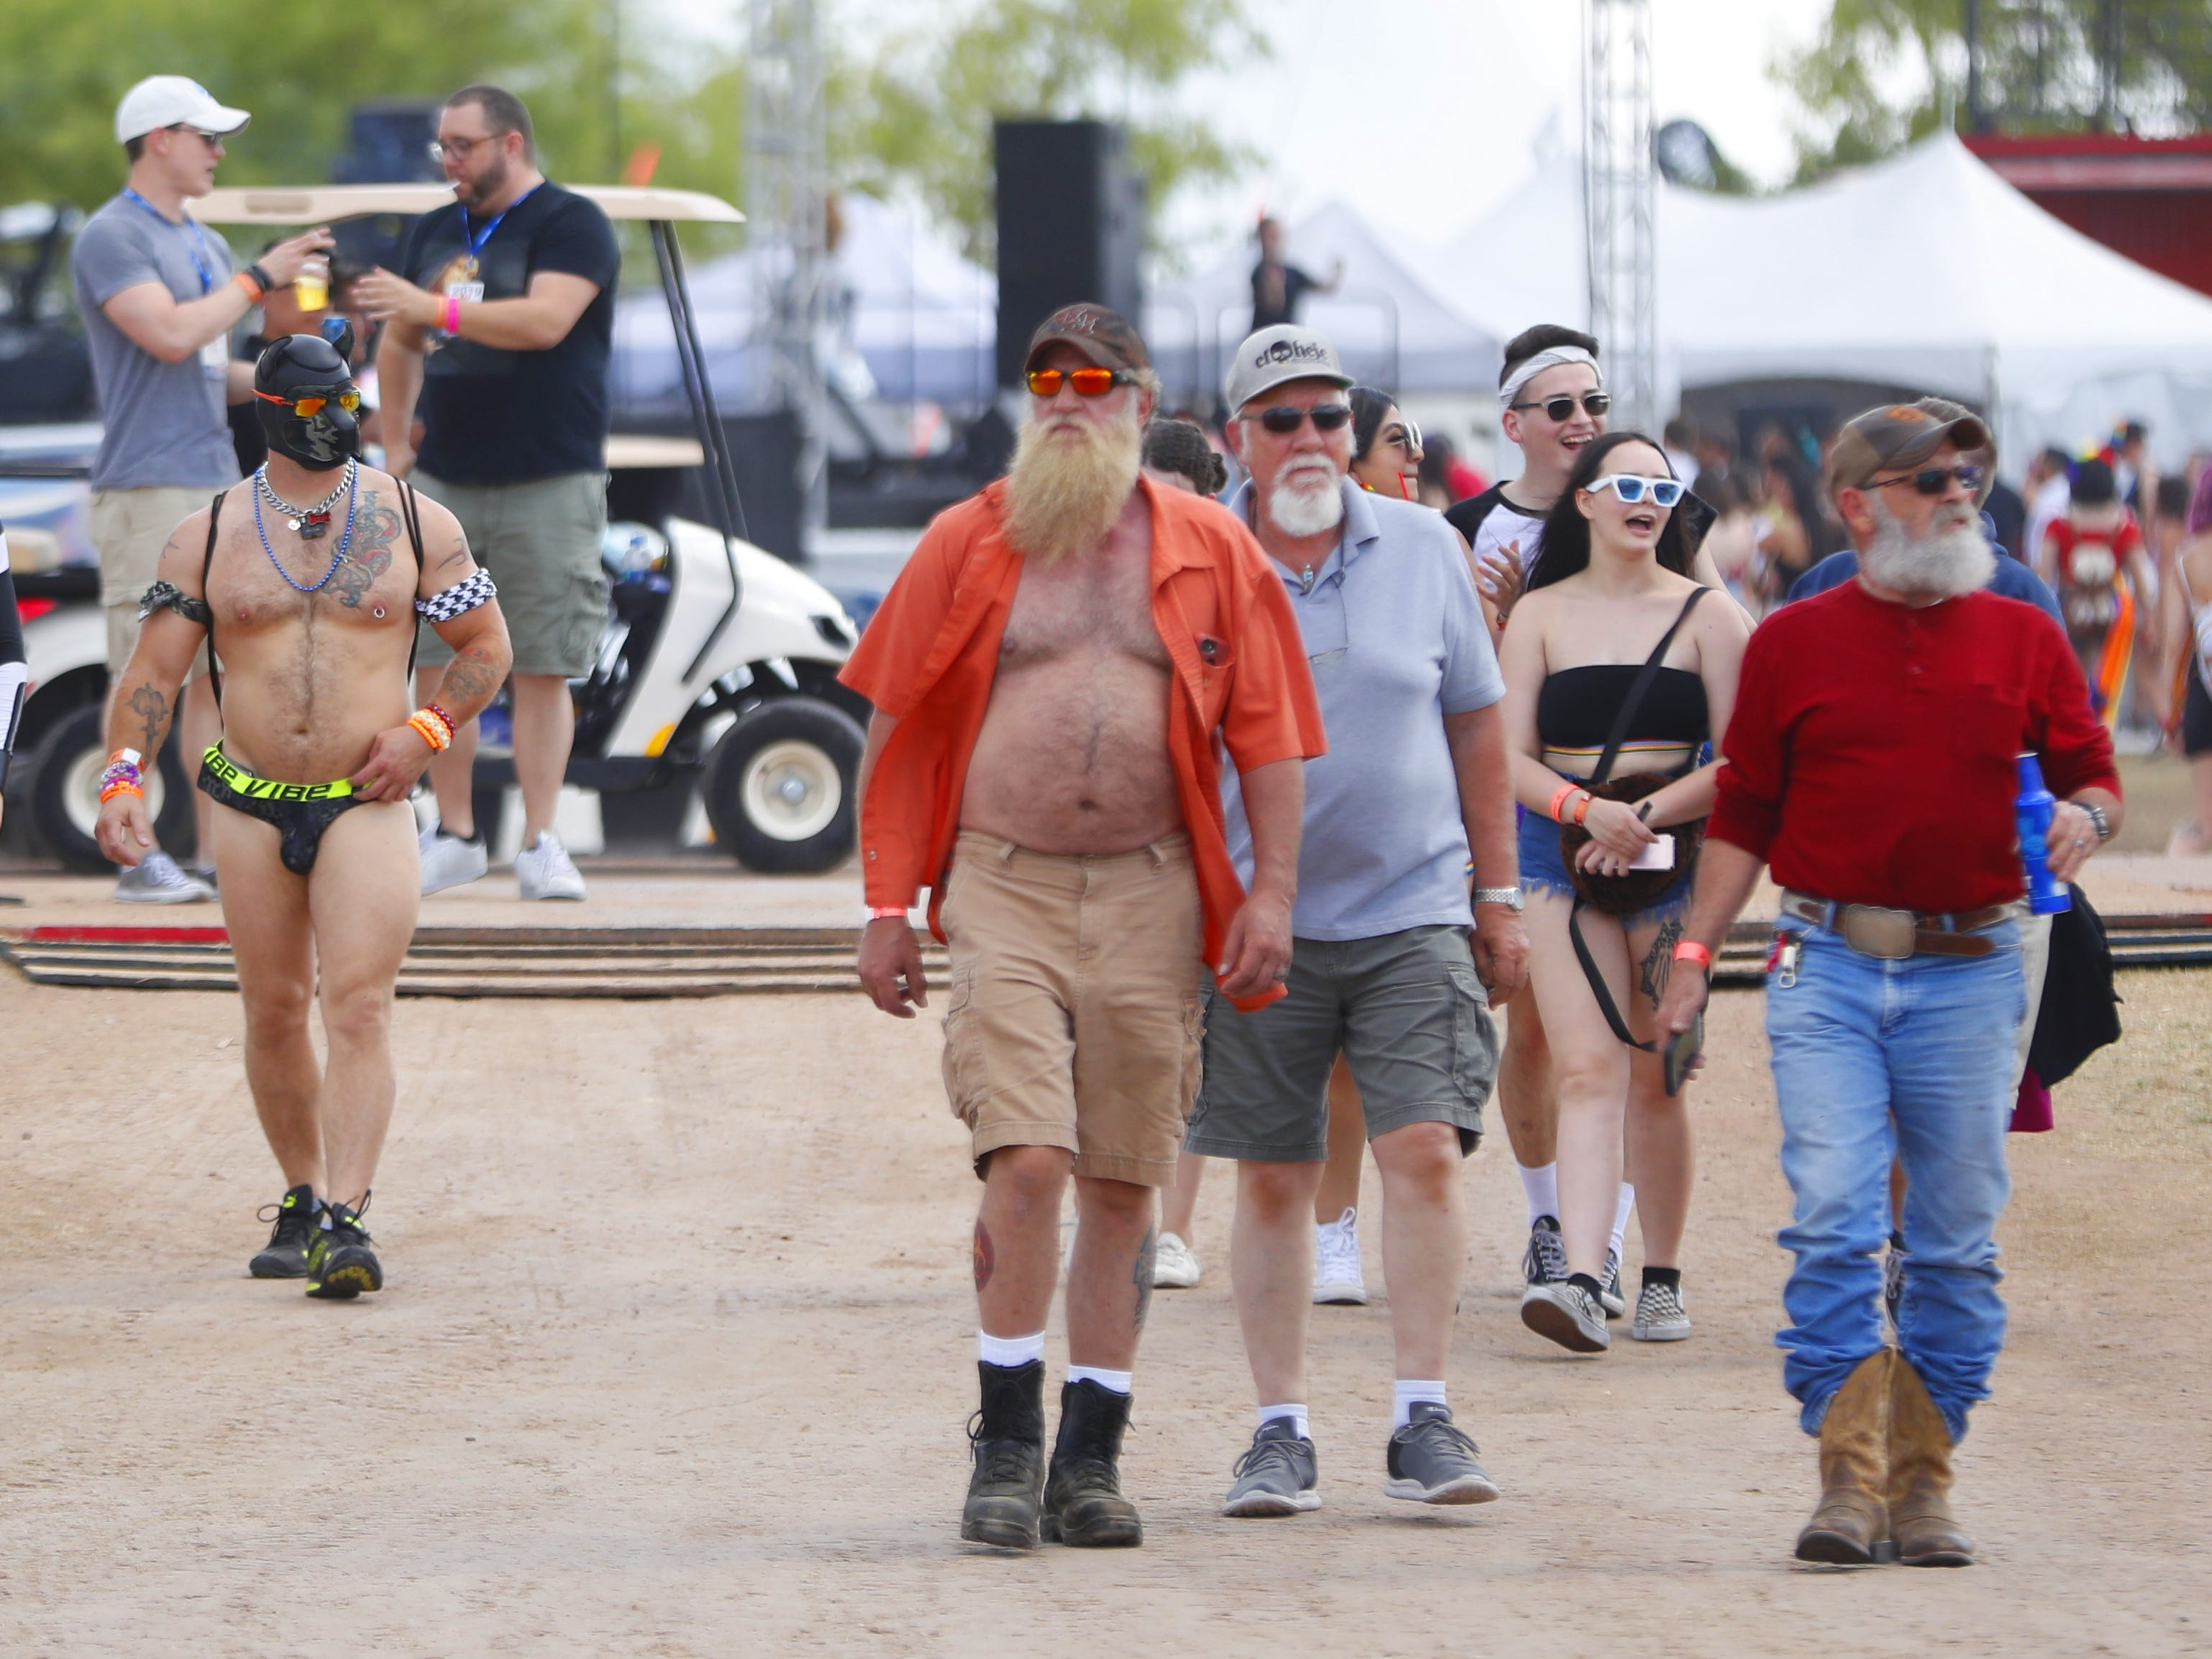 People make their way into the festivities during Phoenix Pride at Steele Indian School Park on April 6, 2019.